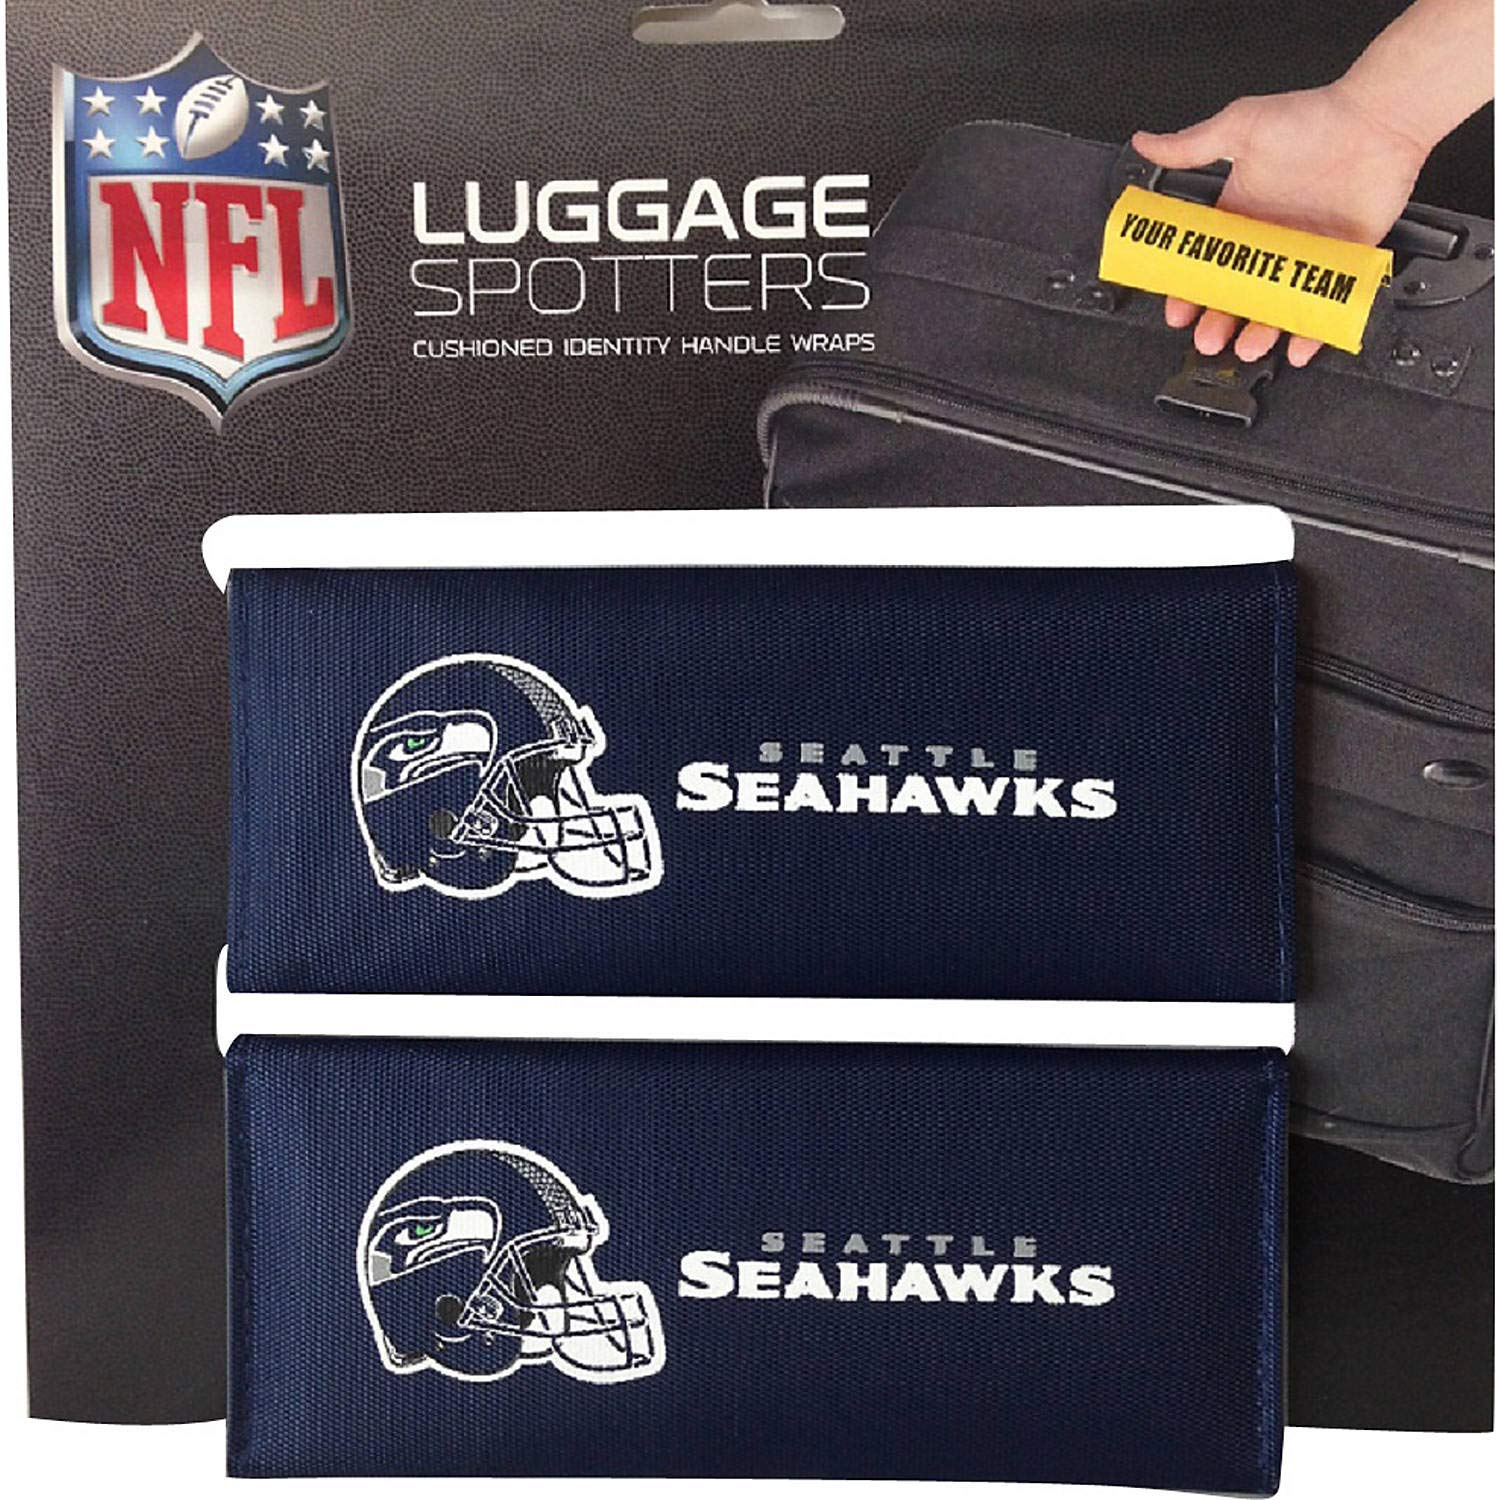 SEAHAWKS Luggage Spotter Suitcase Handle Wrap Bag Tag Locator with I.D. Pocket 2-pk) - CLOSEOUT! SELLING FAST!